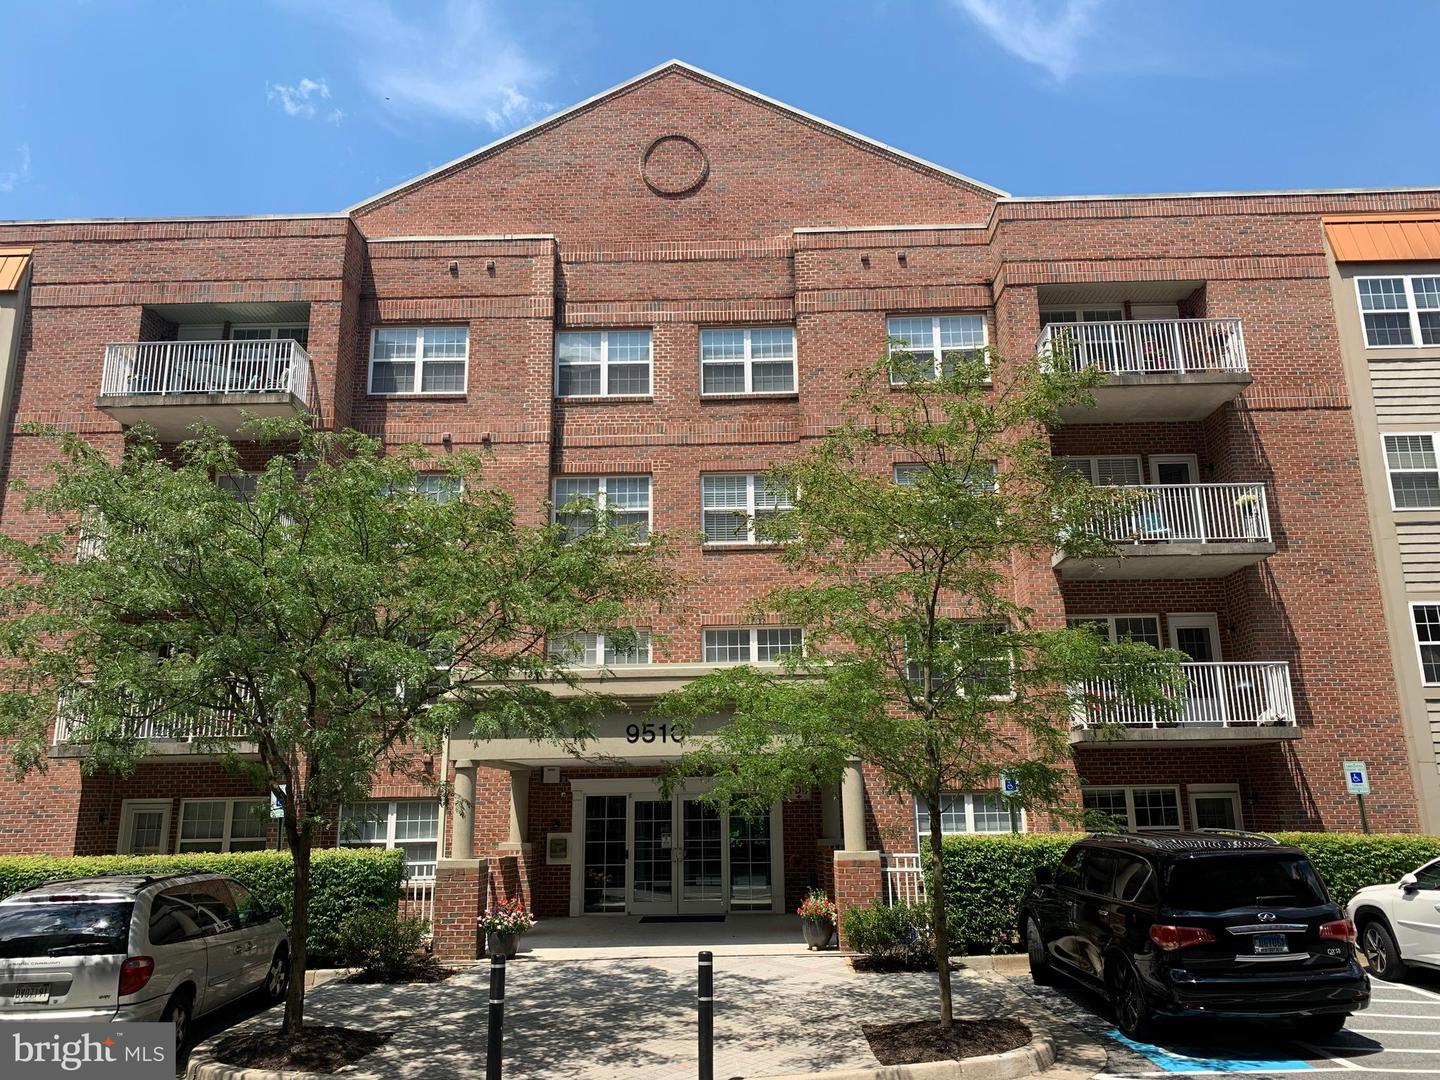 9510 Coyle Road  #210 - Baltimore, Maryland 21117